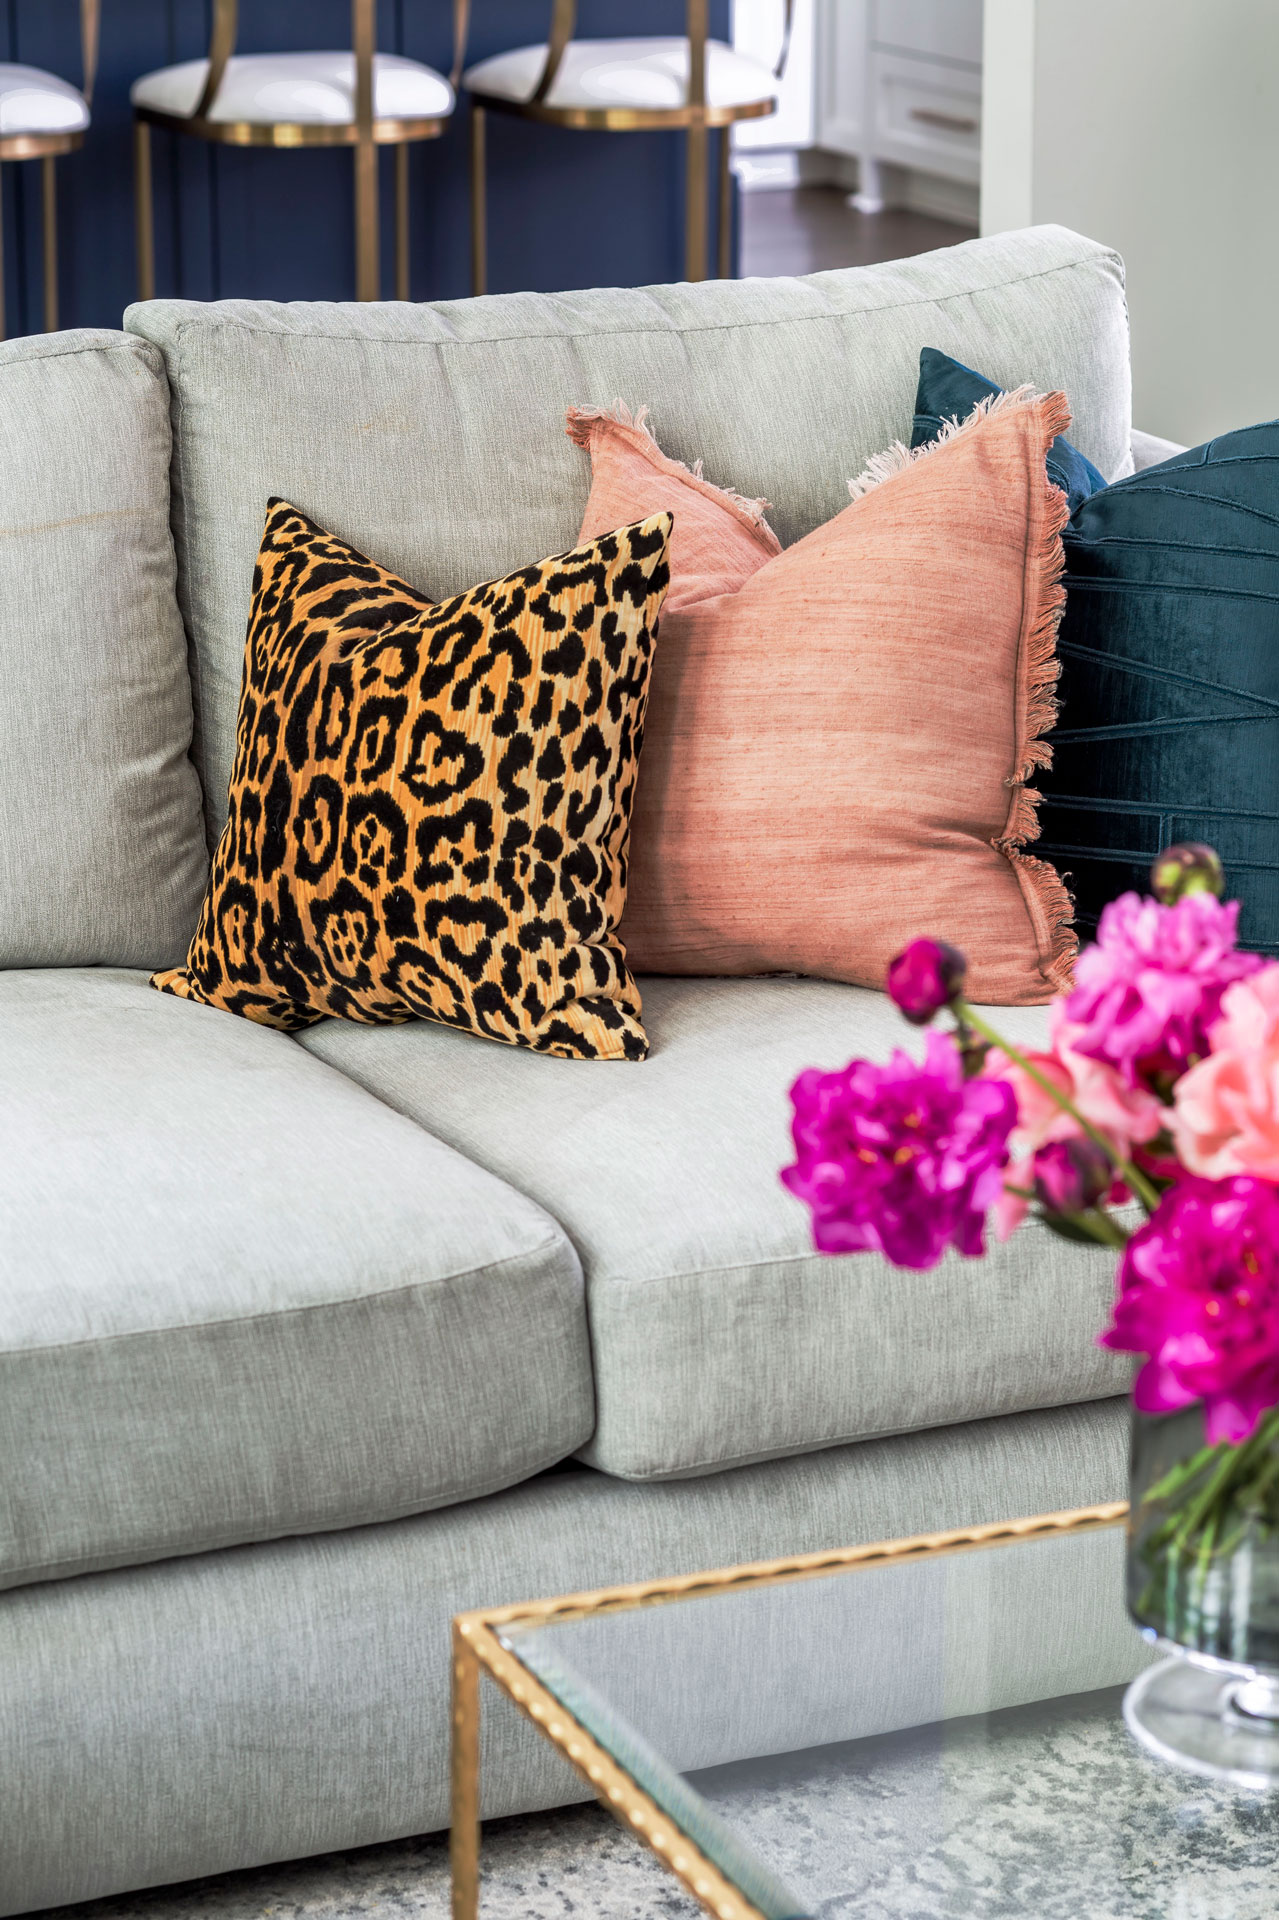 Grey velvet sectional with colorful printed throw pillows